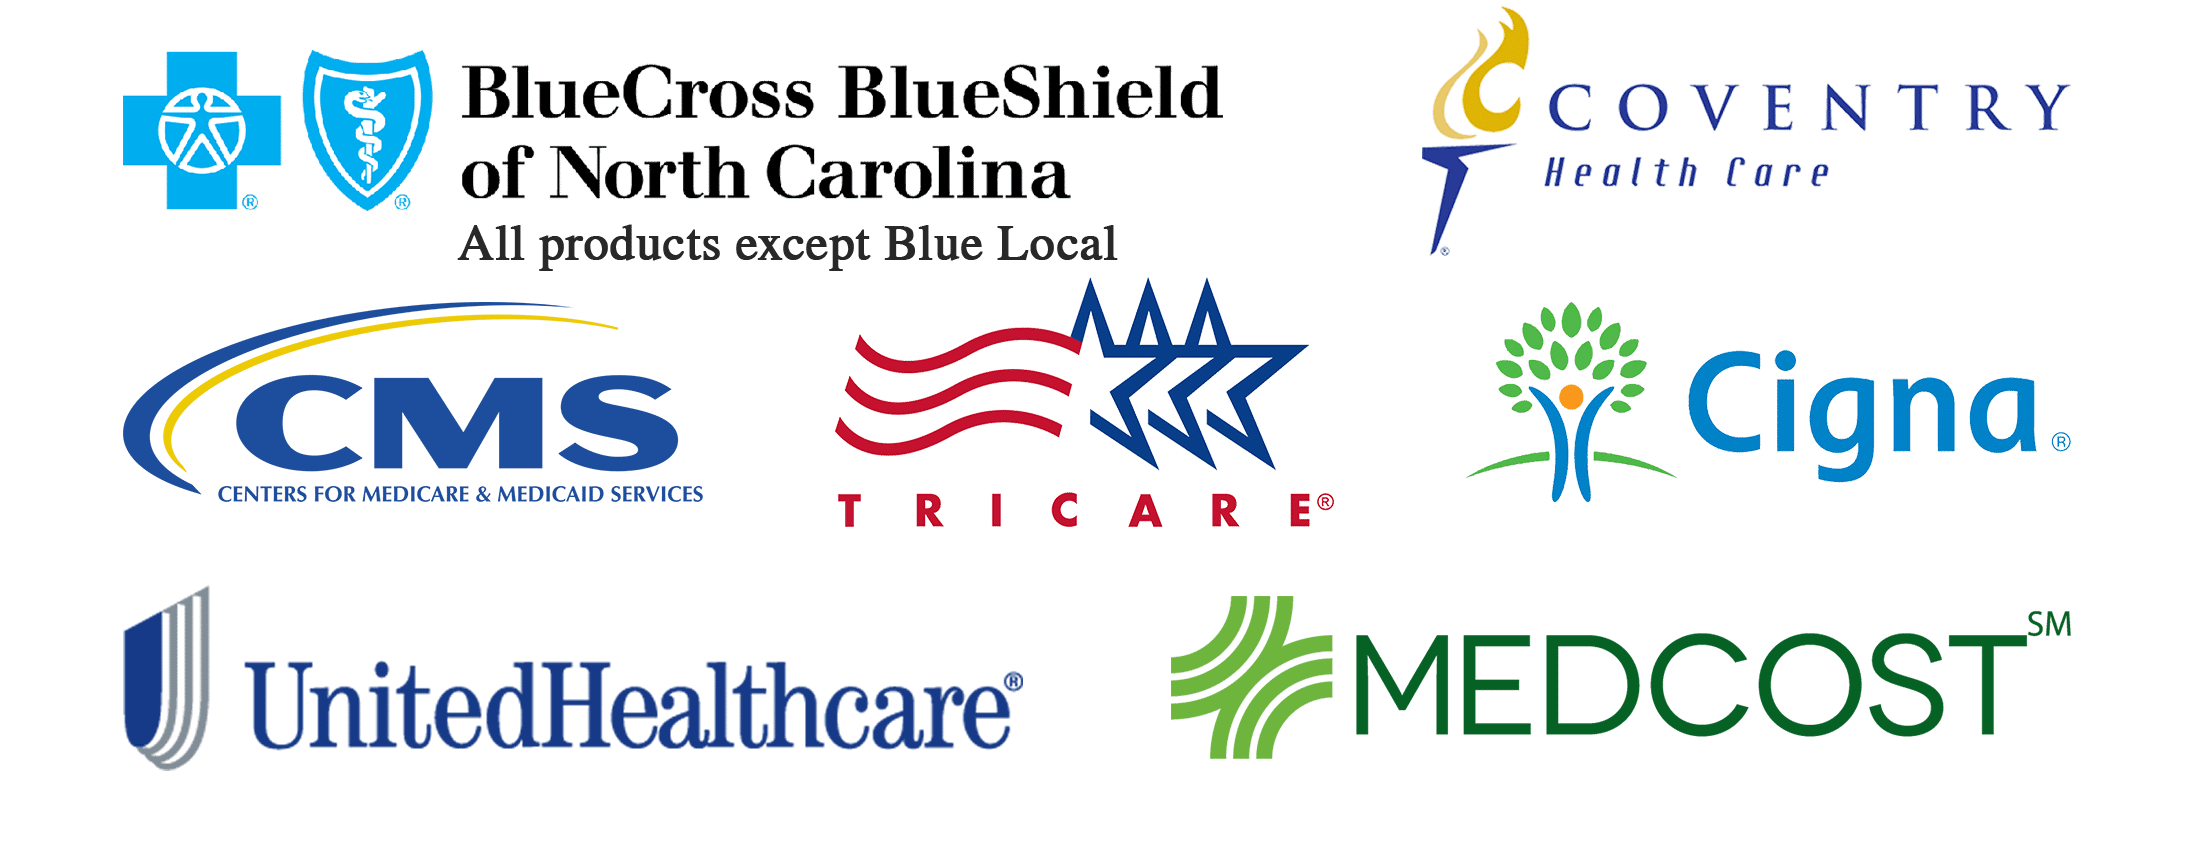 Blue Cross Blue Shield of North Carolina (all products except Blue Local), MedCost, Coventry, United Healthcare, Cigna, Tricare, Medicare / Medicaid